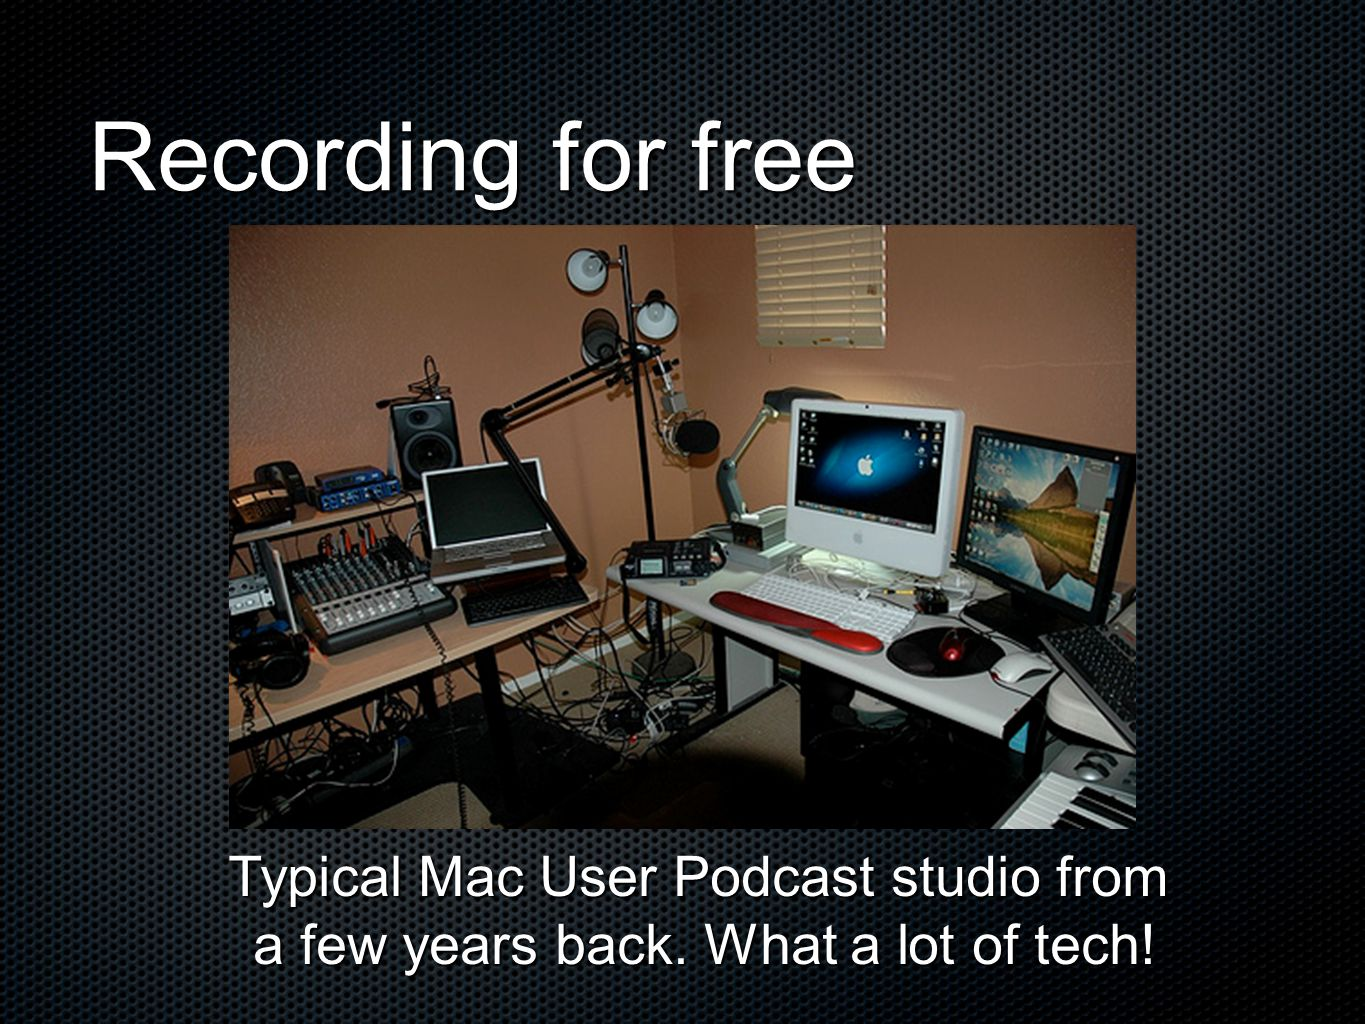 Recording for free Typical Mac User Podcast studio from a few years back. What a lot of tech!